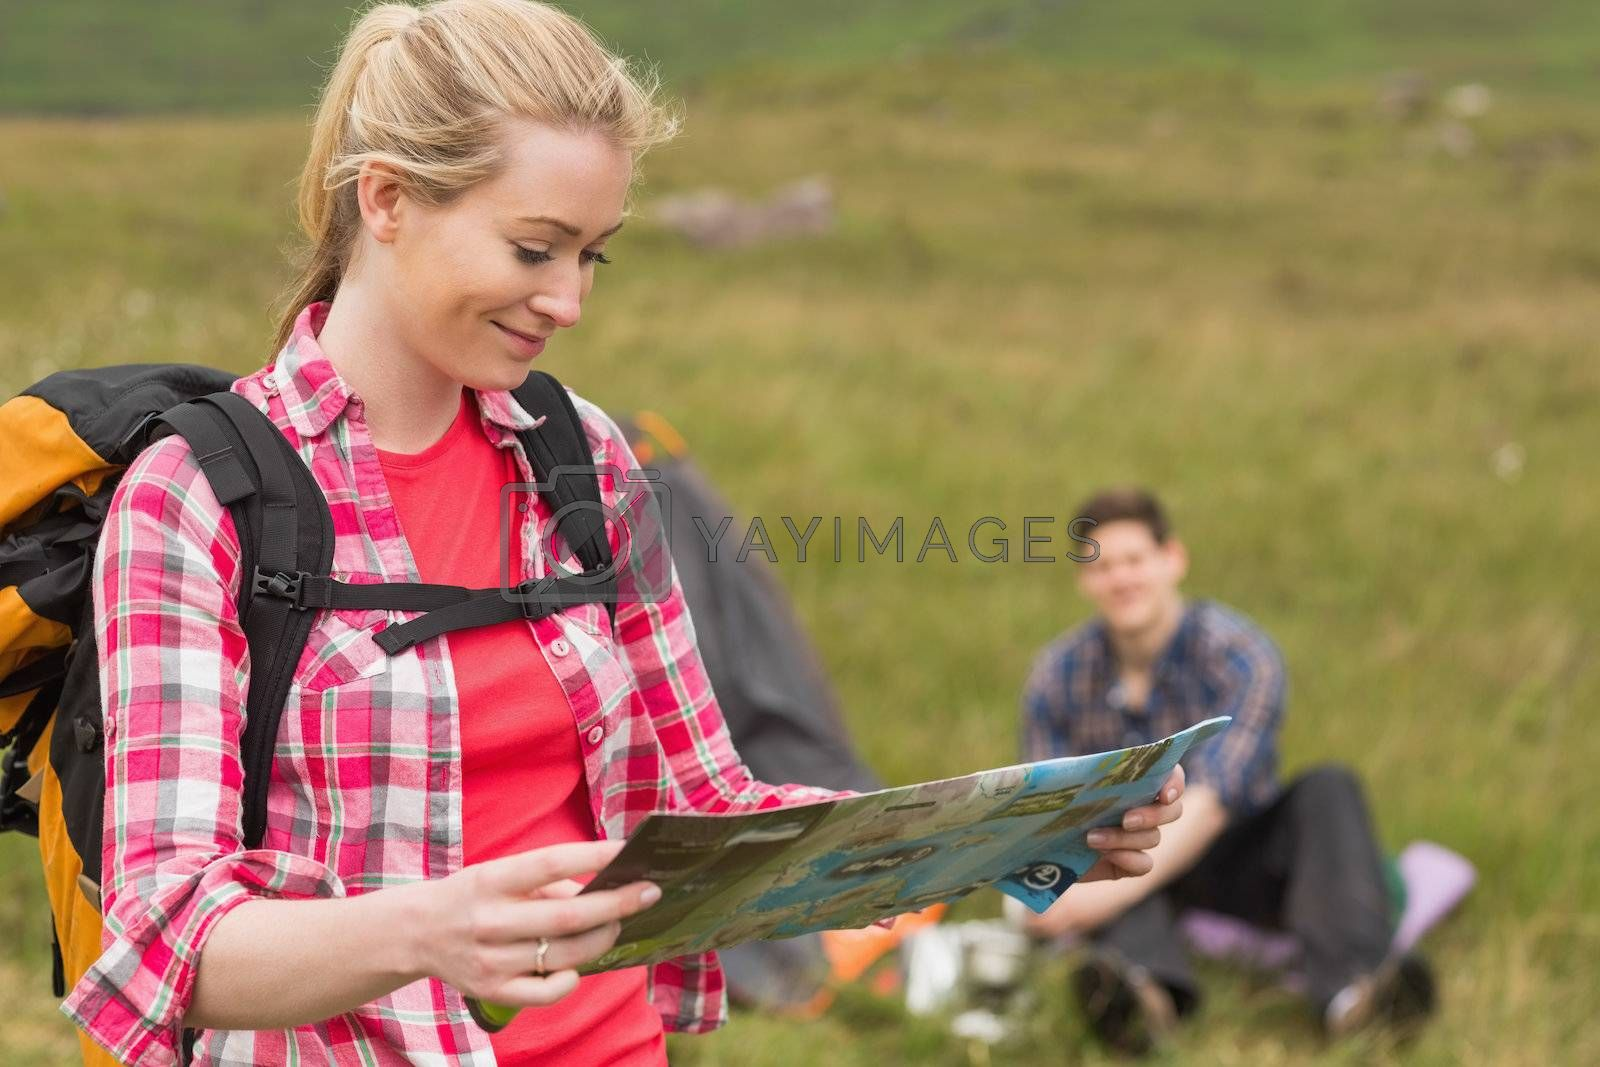 Happy woman carrying backpack and holding map by Wavebreakmedia